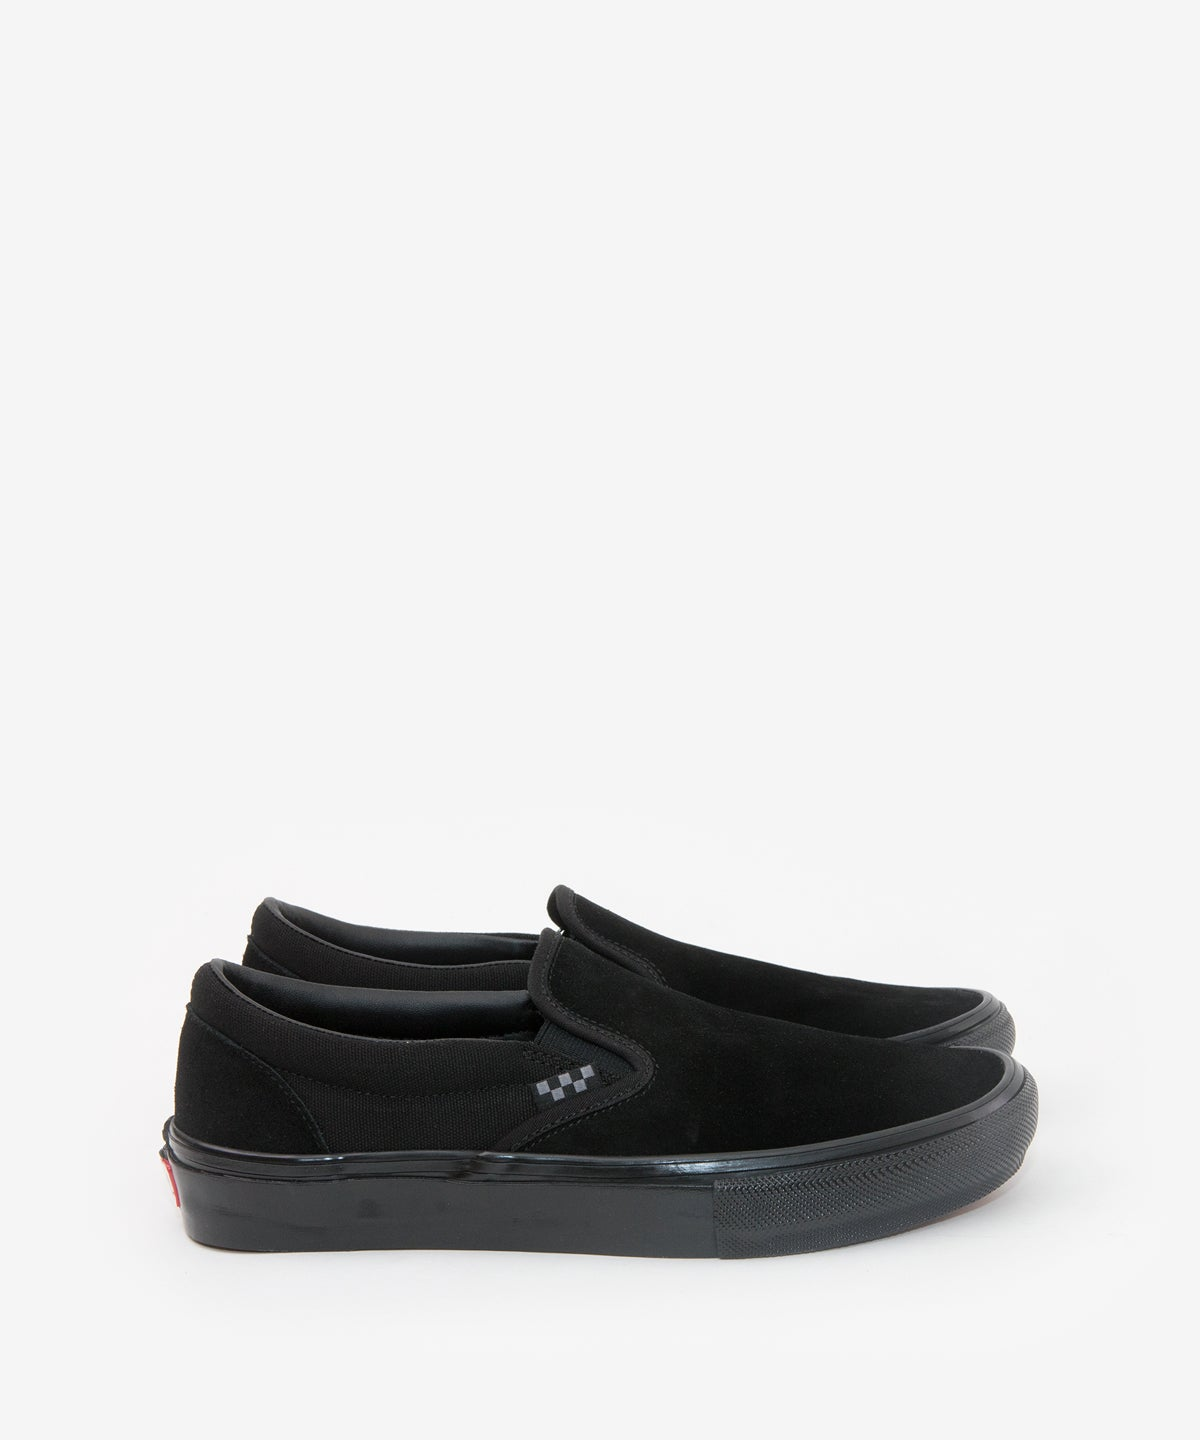 Image of VANS_SKATE SLIP-ON :::BLACKOUT:::